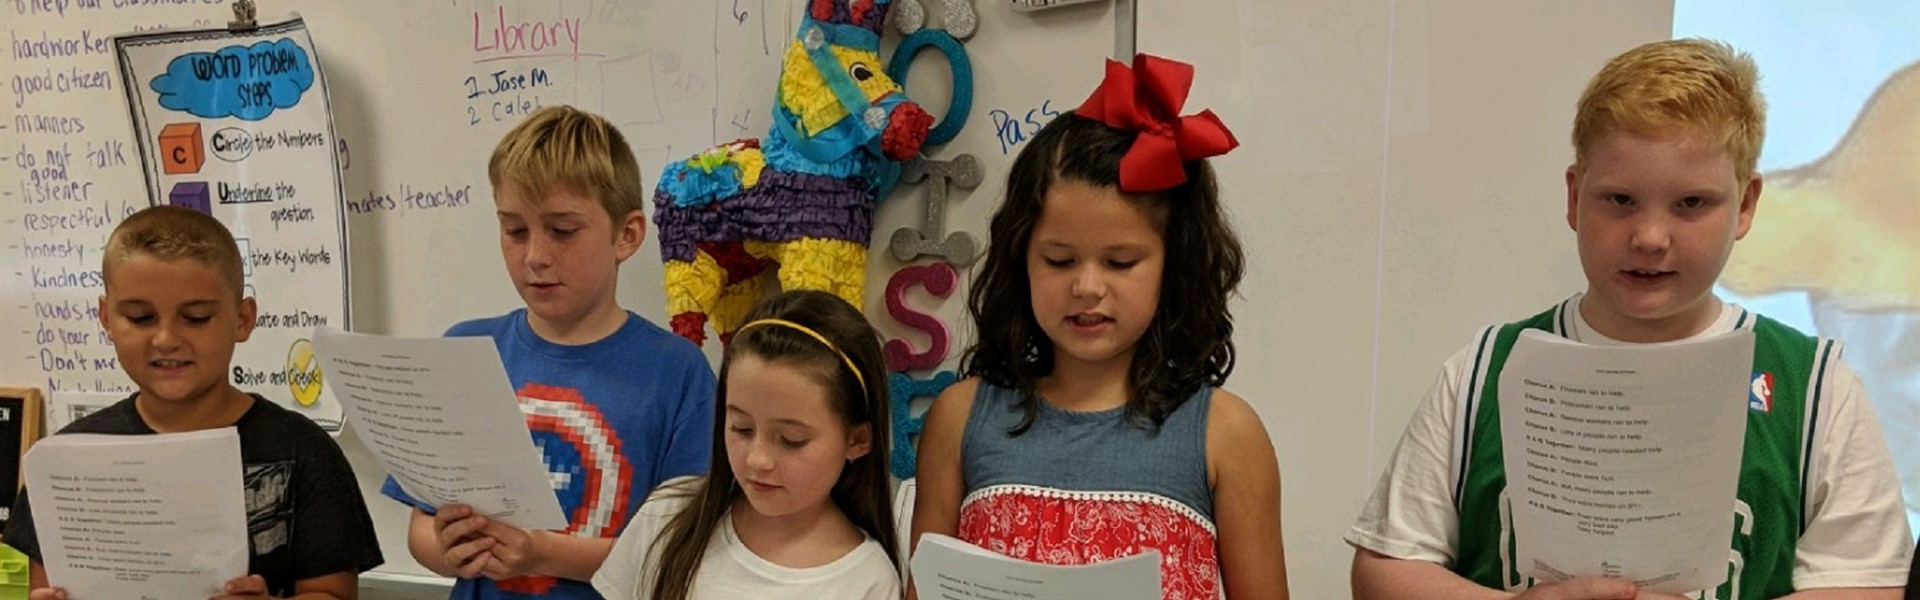 Fourth grade students honor heroes during a reader's theater activity  on Patriot's Day.